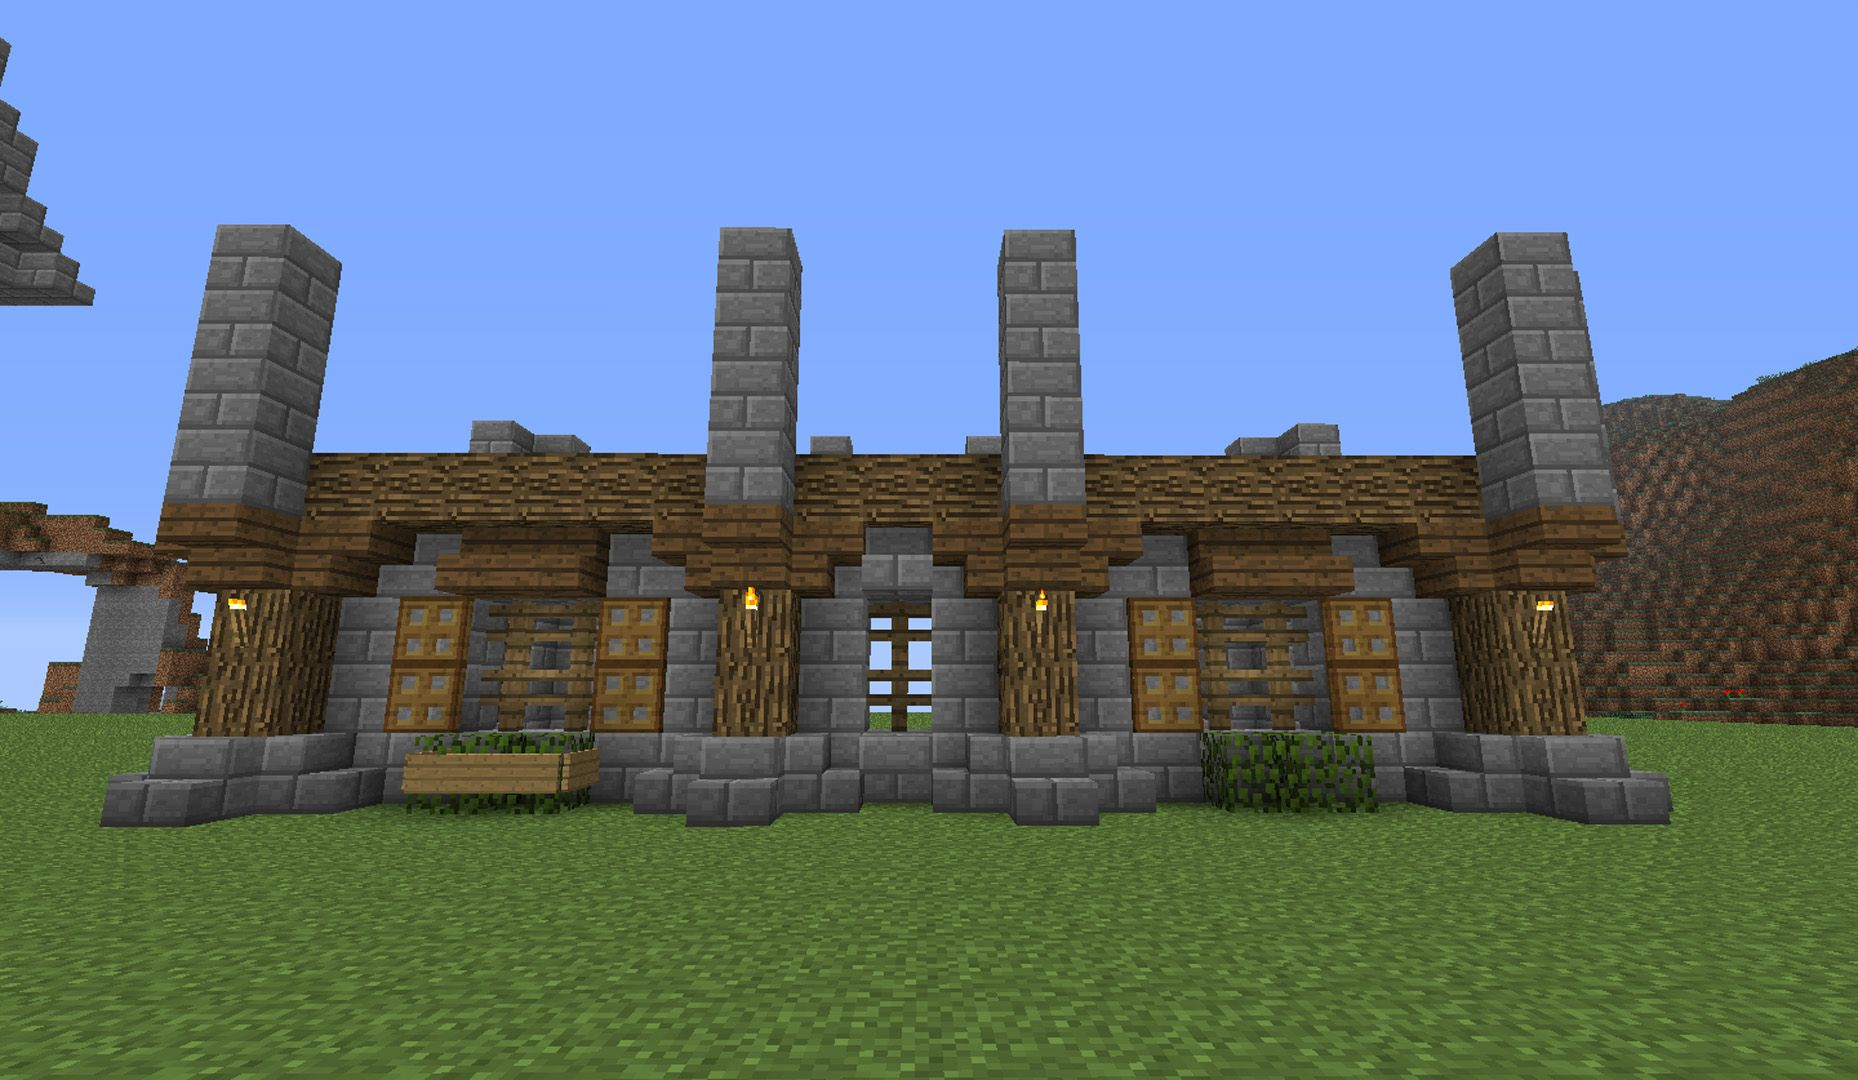 Related Image Minecraft Houses Survival Stone Houses Fresh House